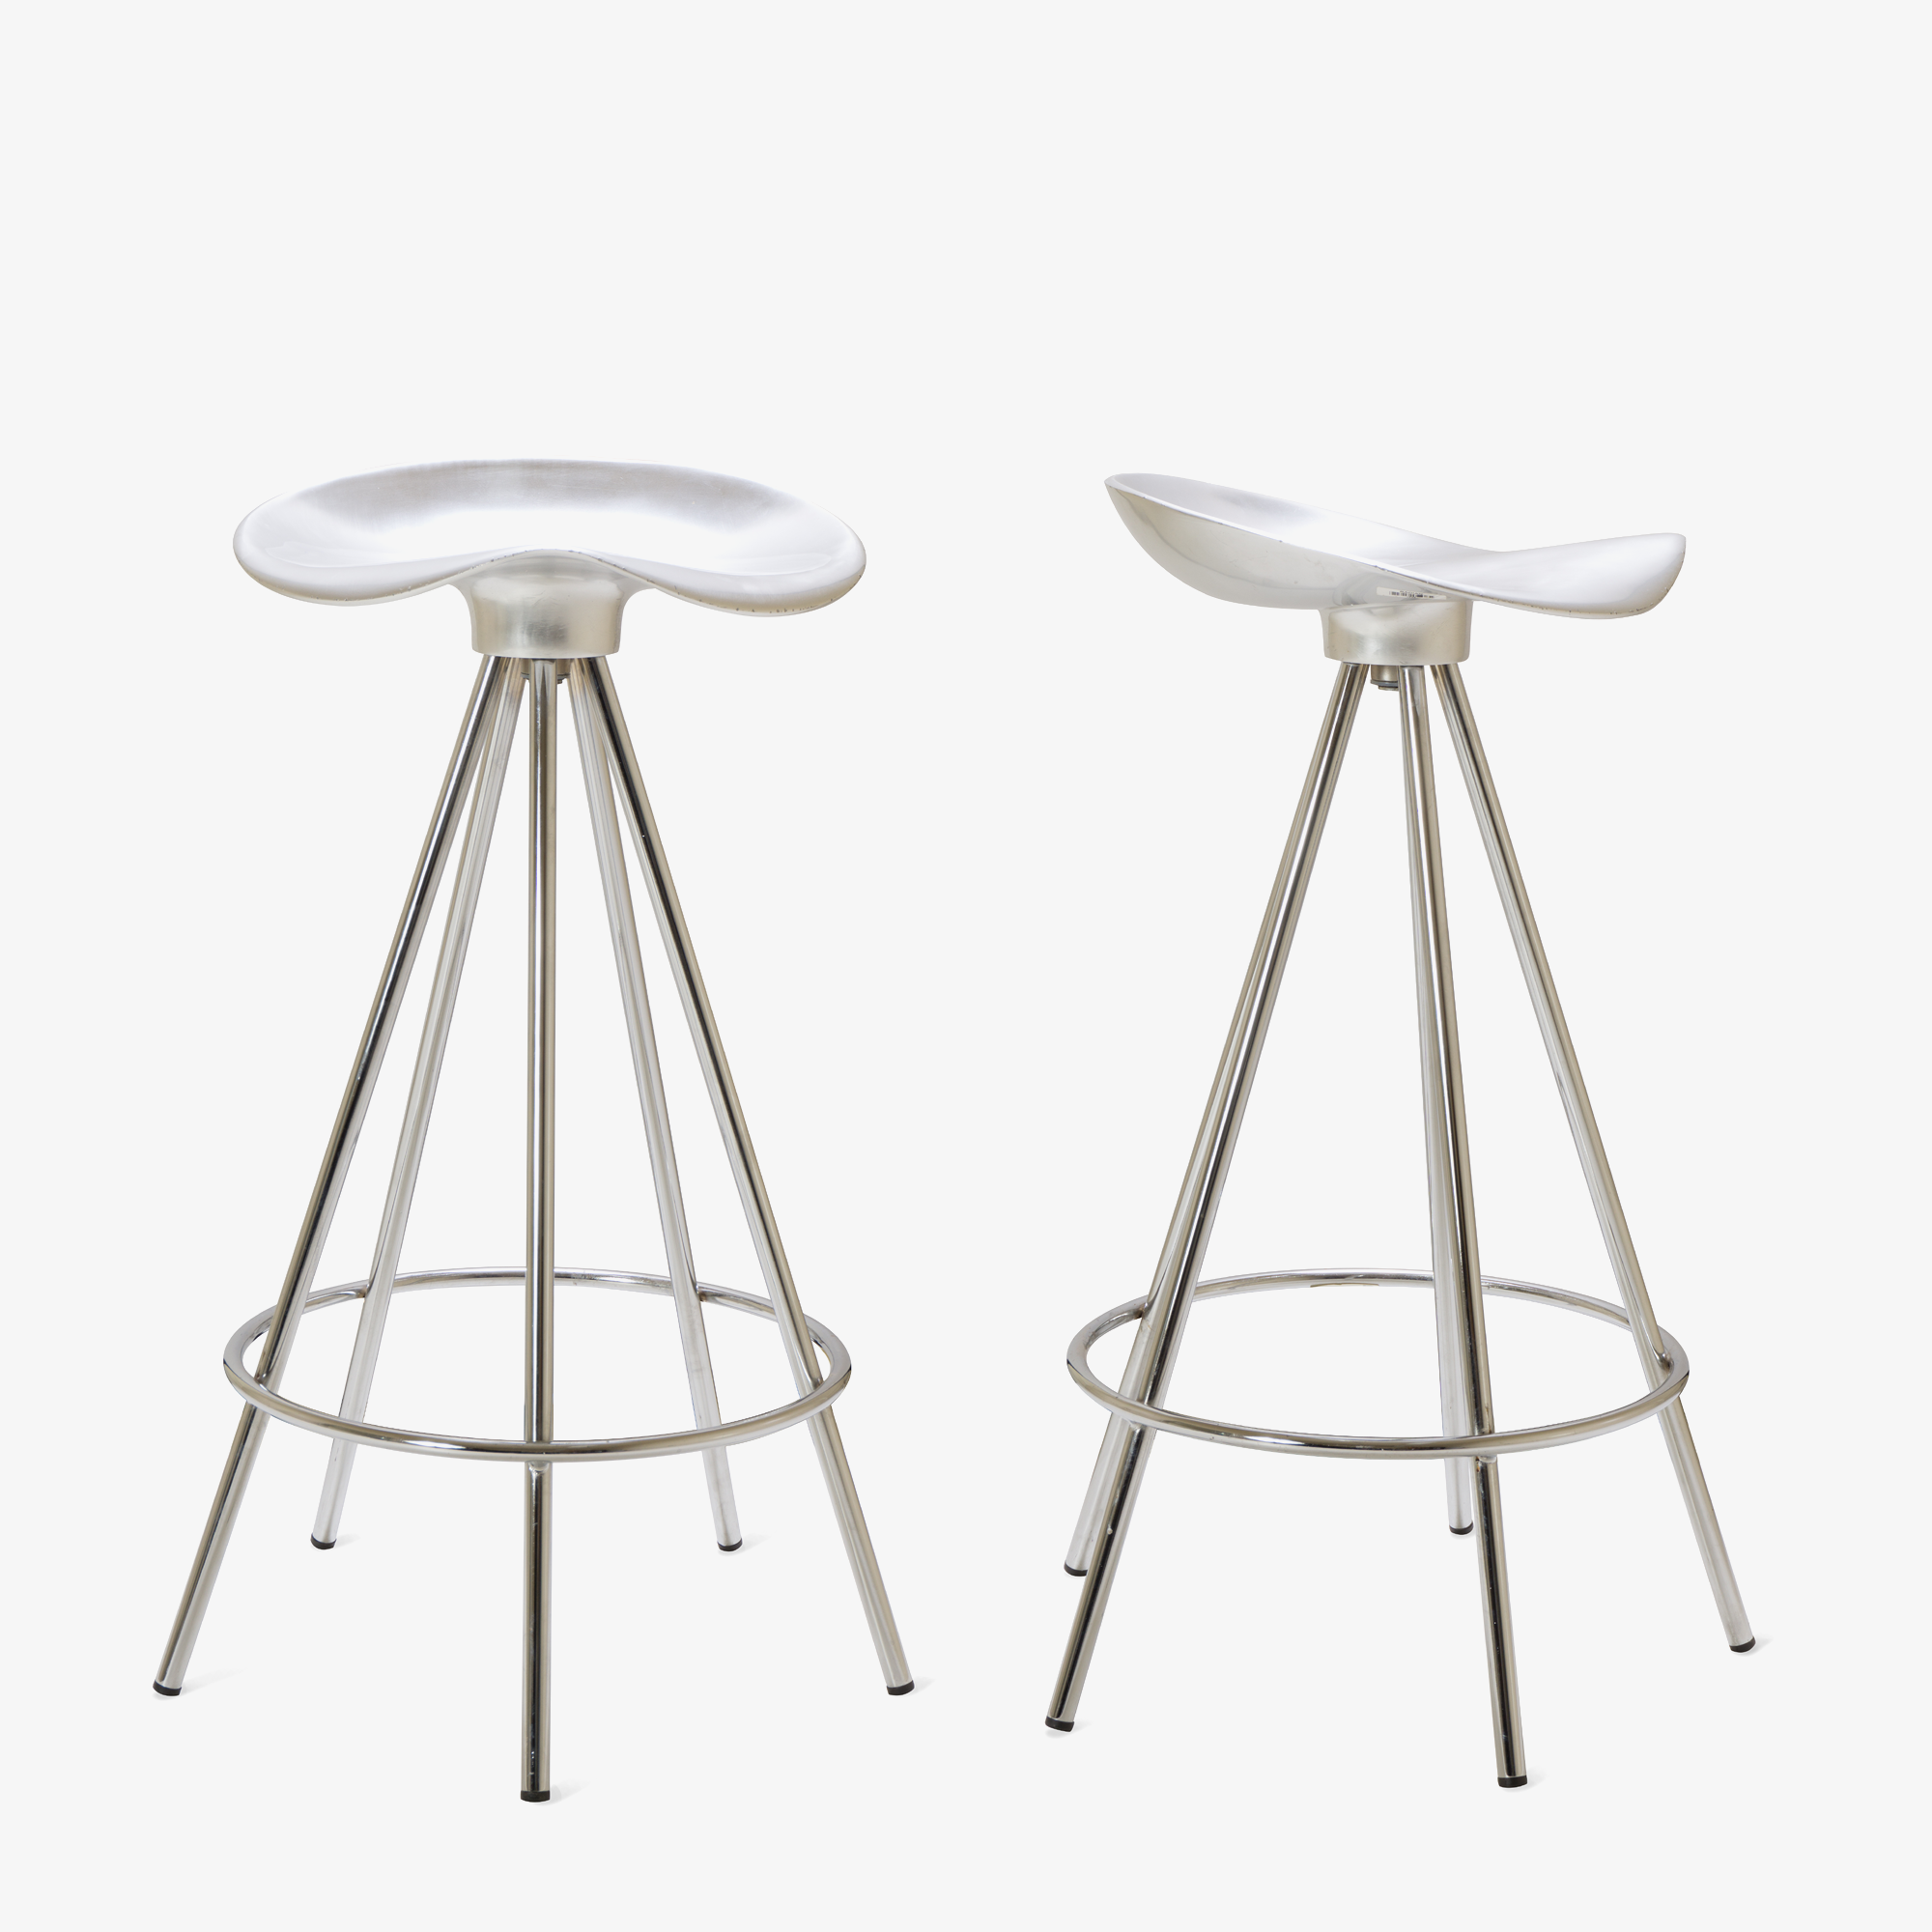 Jamaica Stools by Pepe Cortes for Amat-32.png